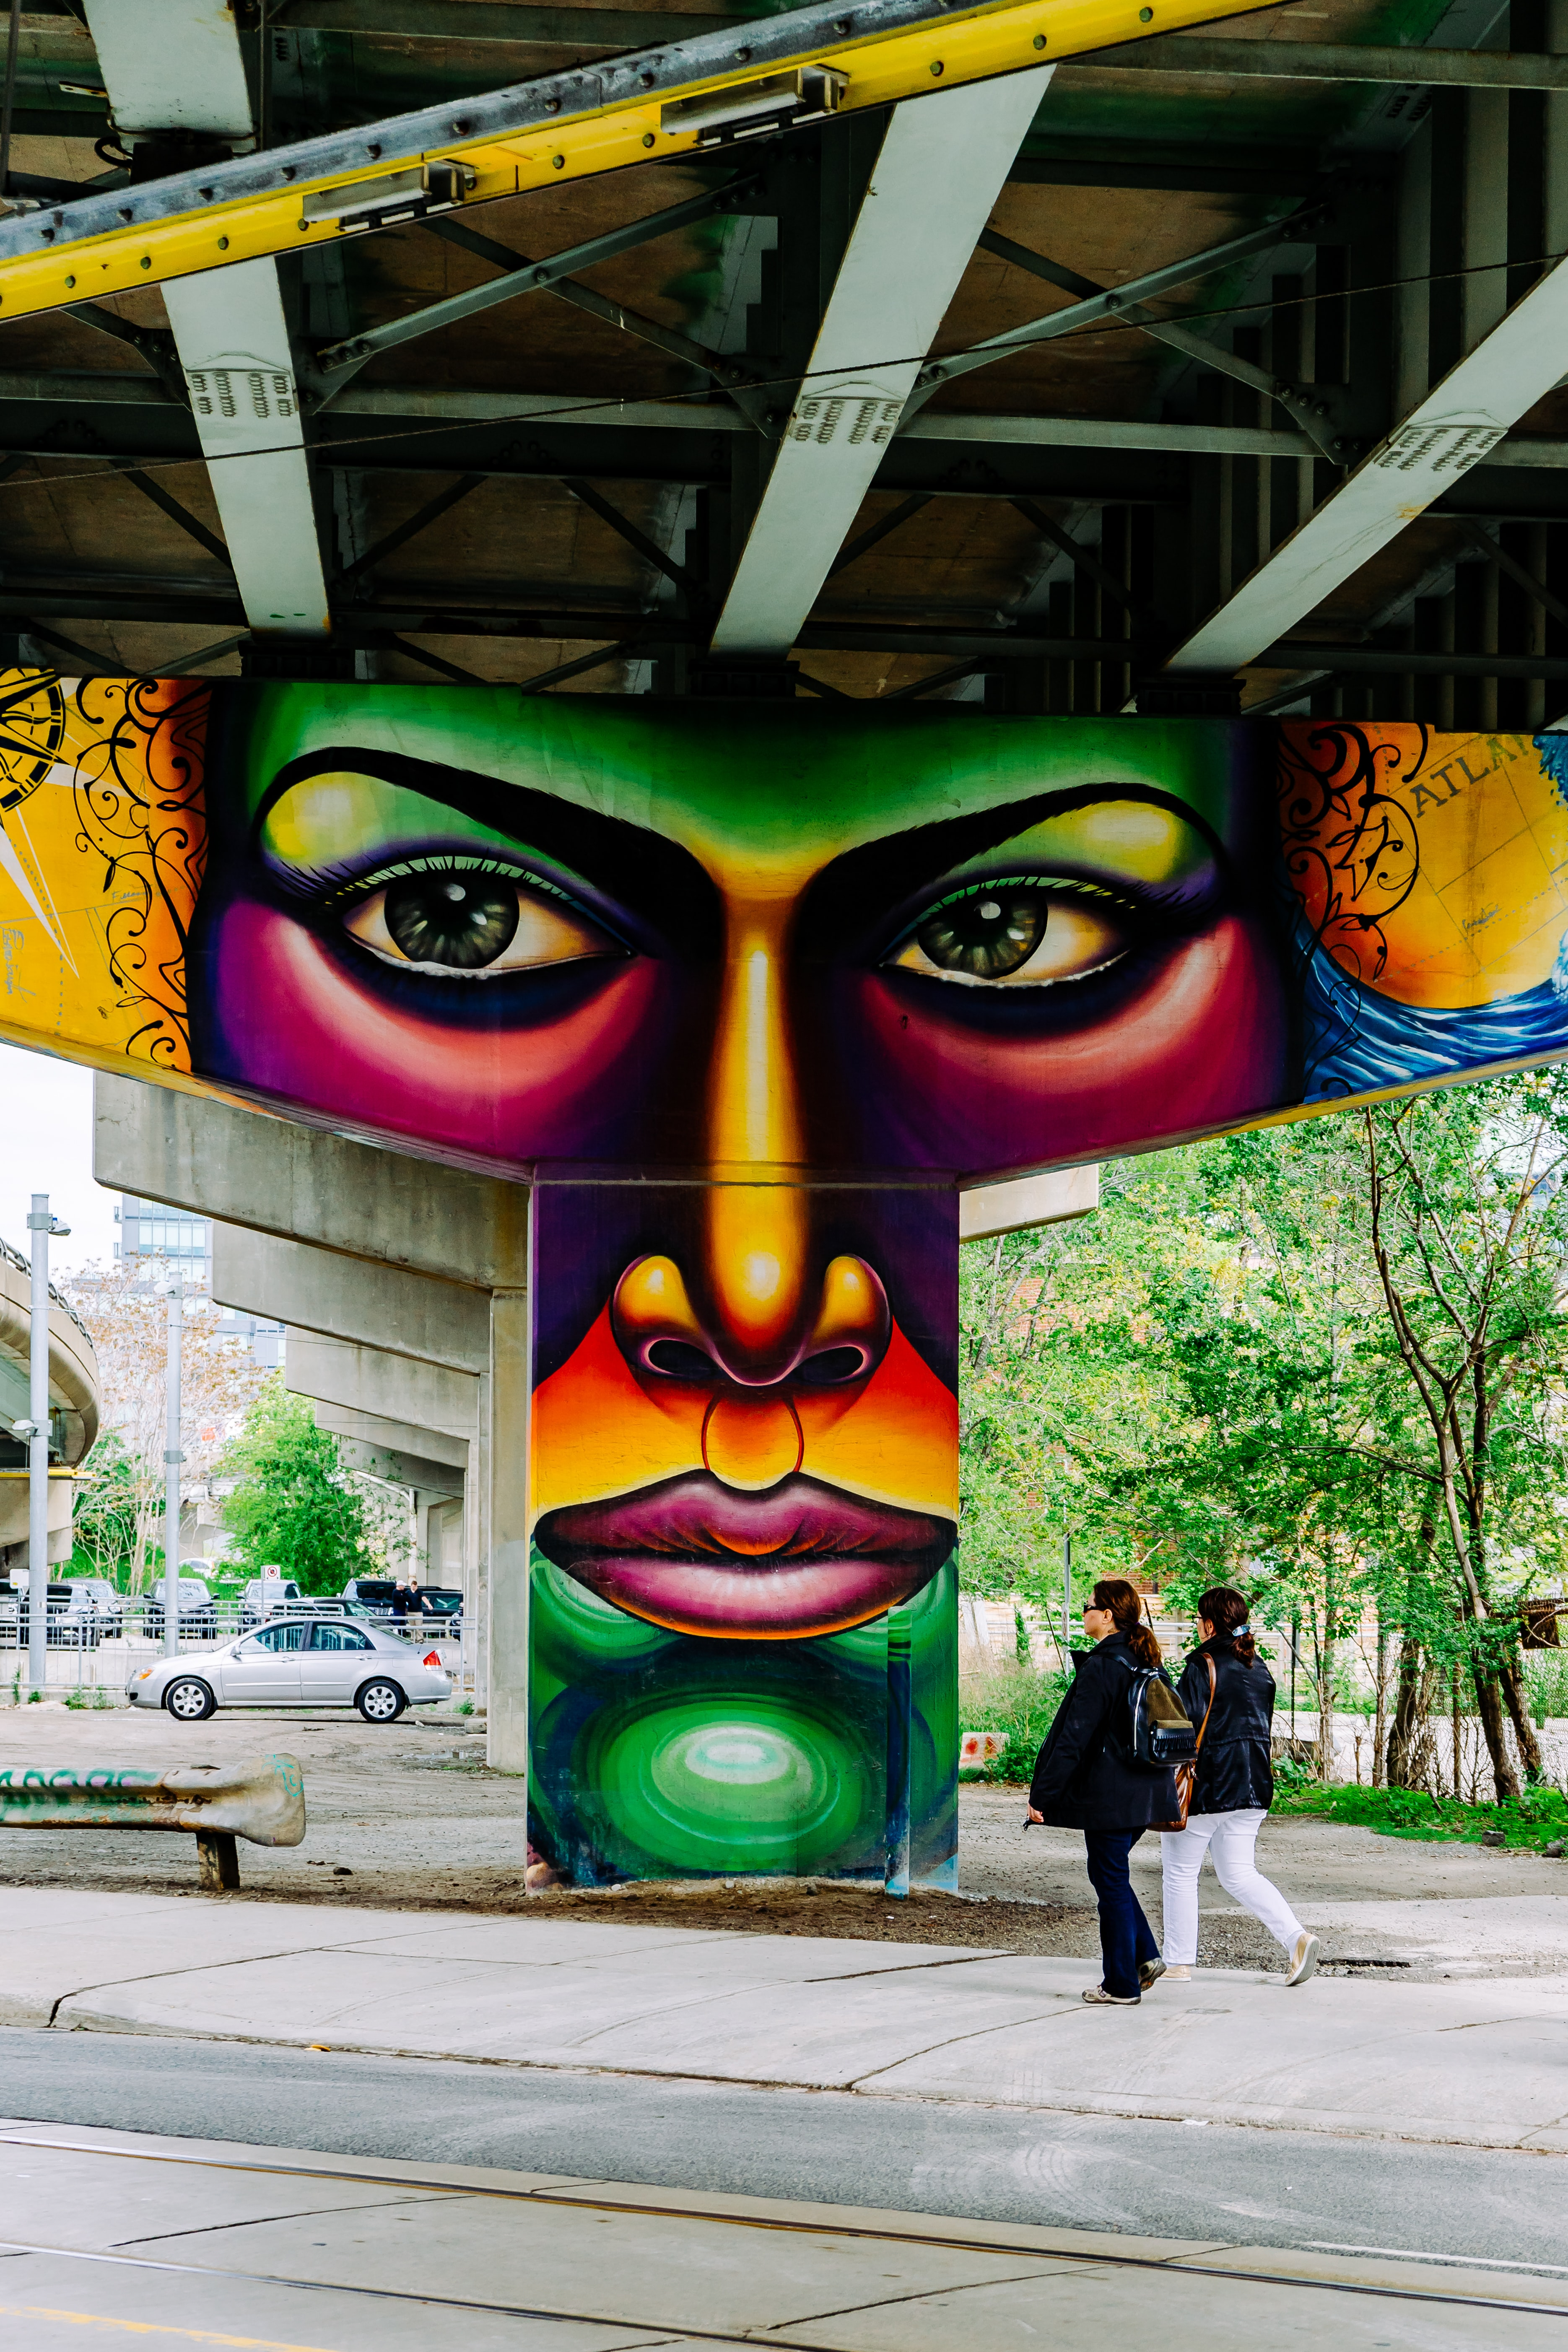 Colorful graffiti of face on bridge structure with people walking on underpass, 507 King St E